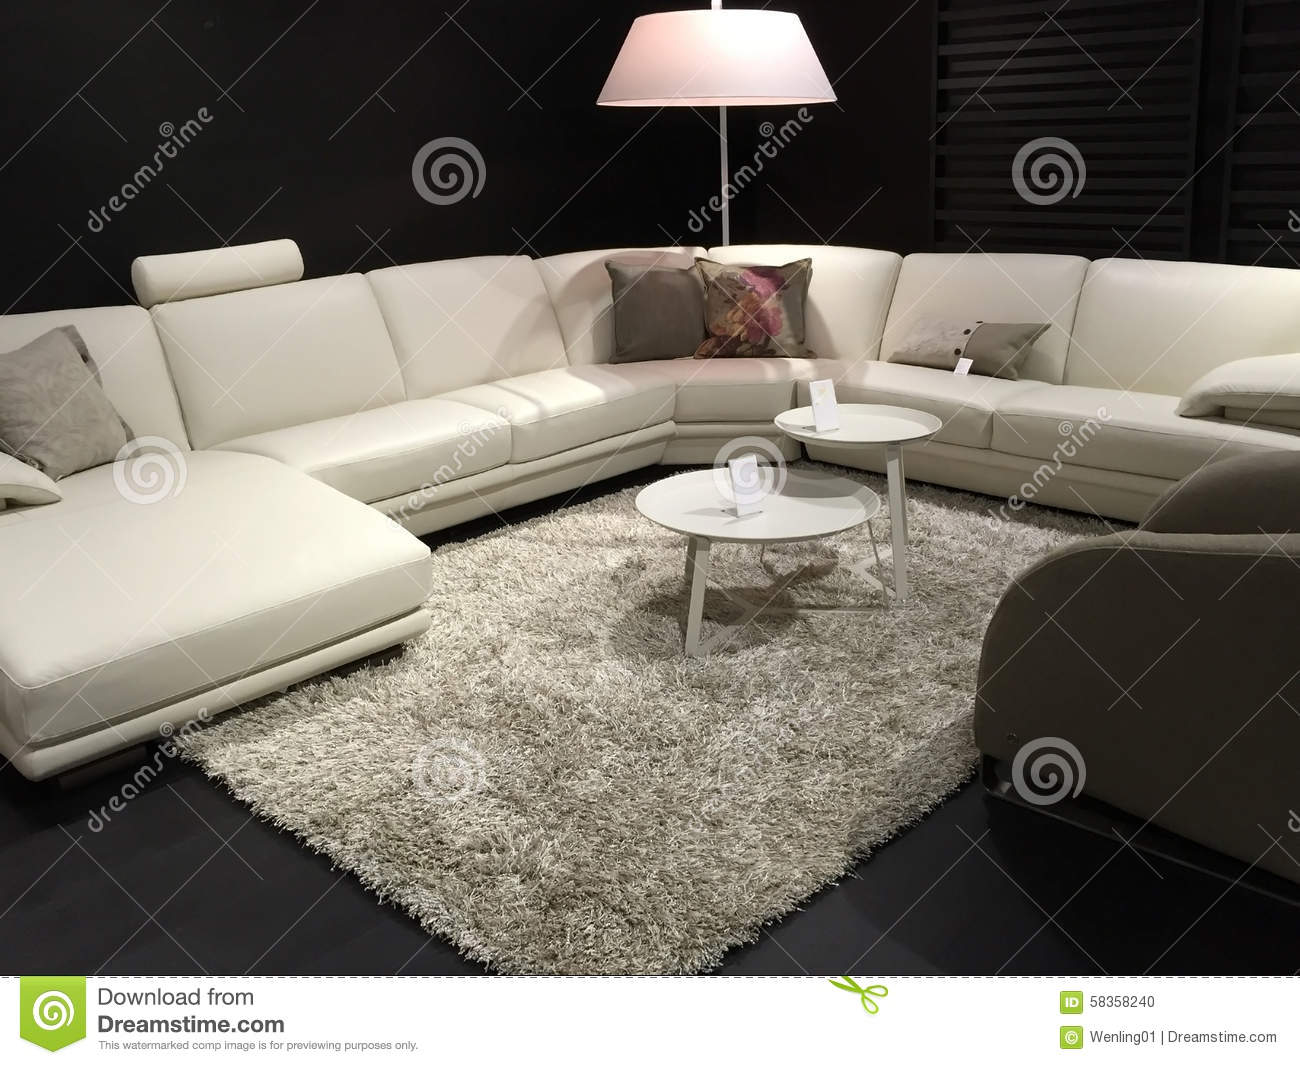 nice living room furniture selling at store stock photo. Black Bedroom Furniture Sets. Home Design Ideas